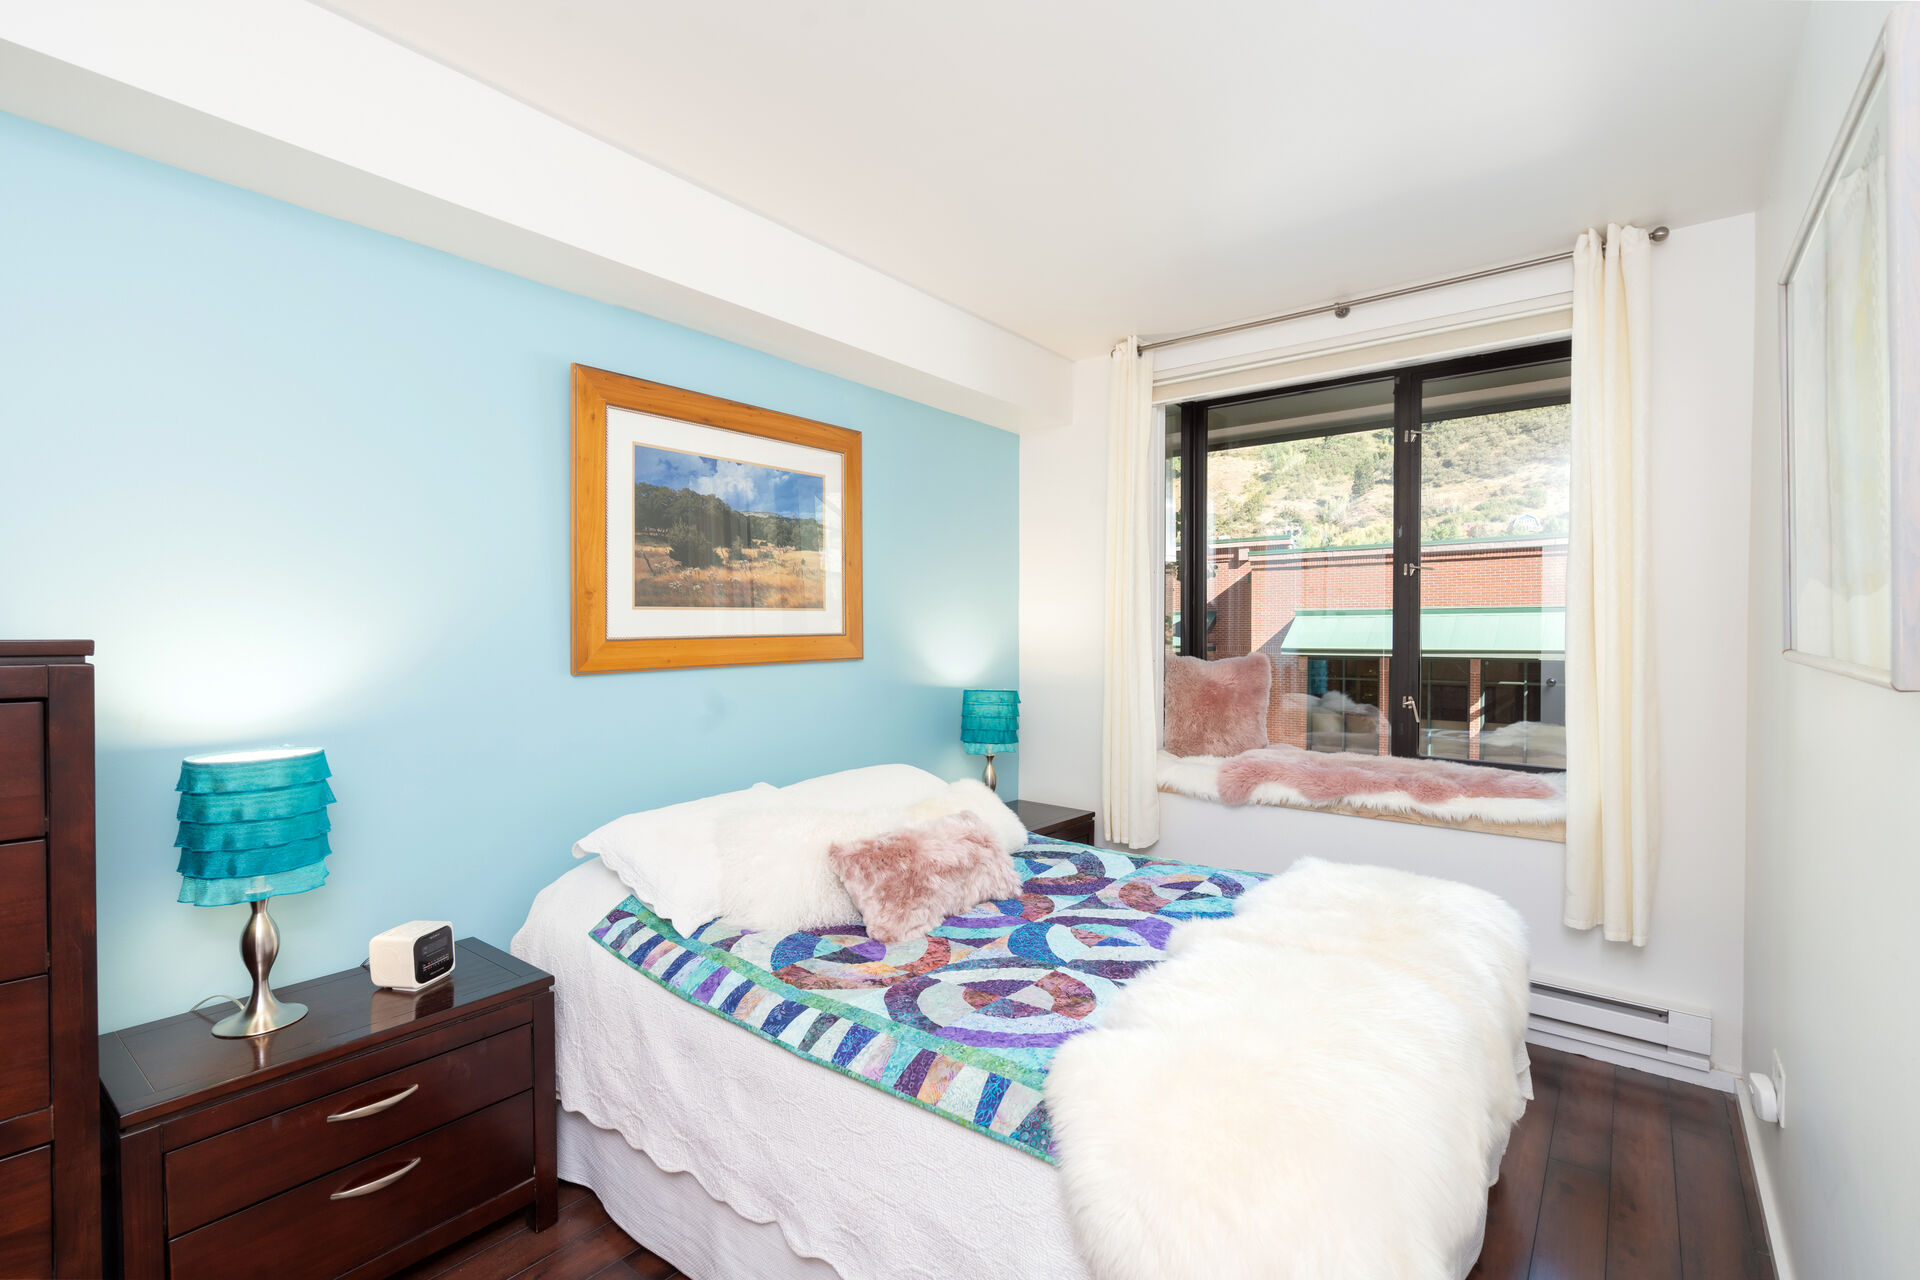 Bedroom with twin nightstands flanking a large bed made with colorful sheets.